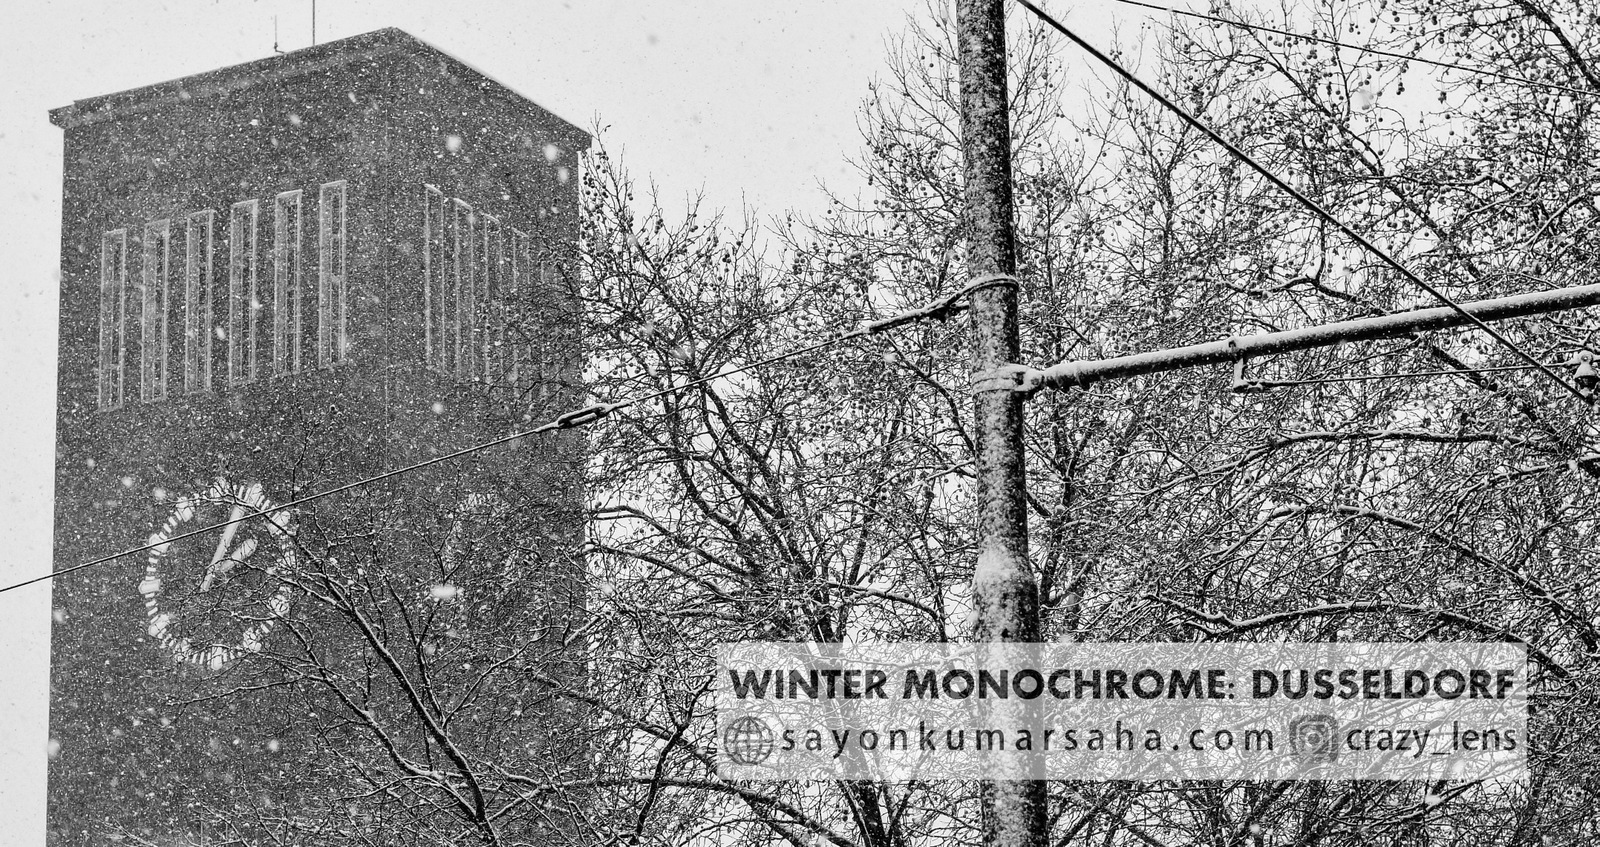 Winter Monochrome: Dusseldorf